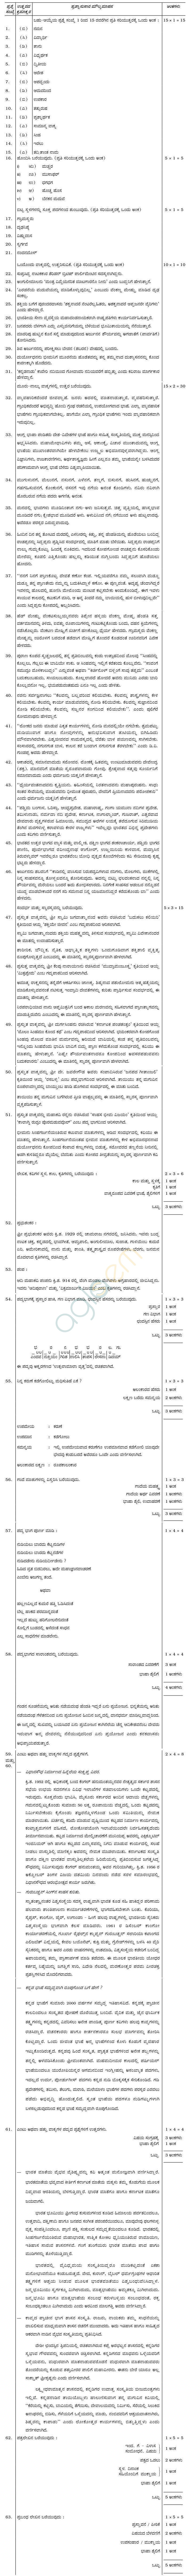 Karnataka SSLC Solved Question Paper April 2014 - Kannada